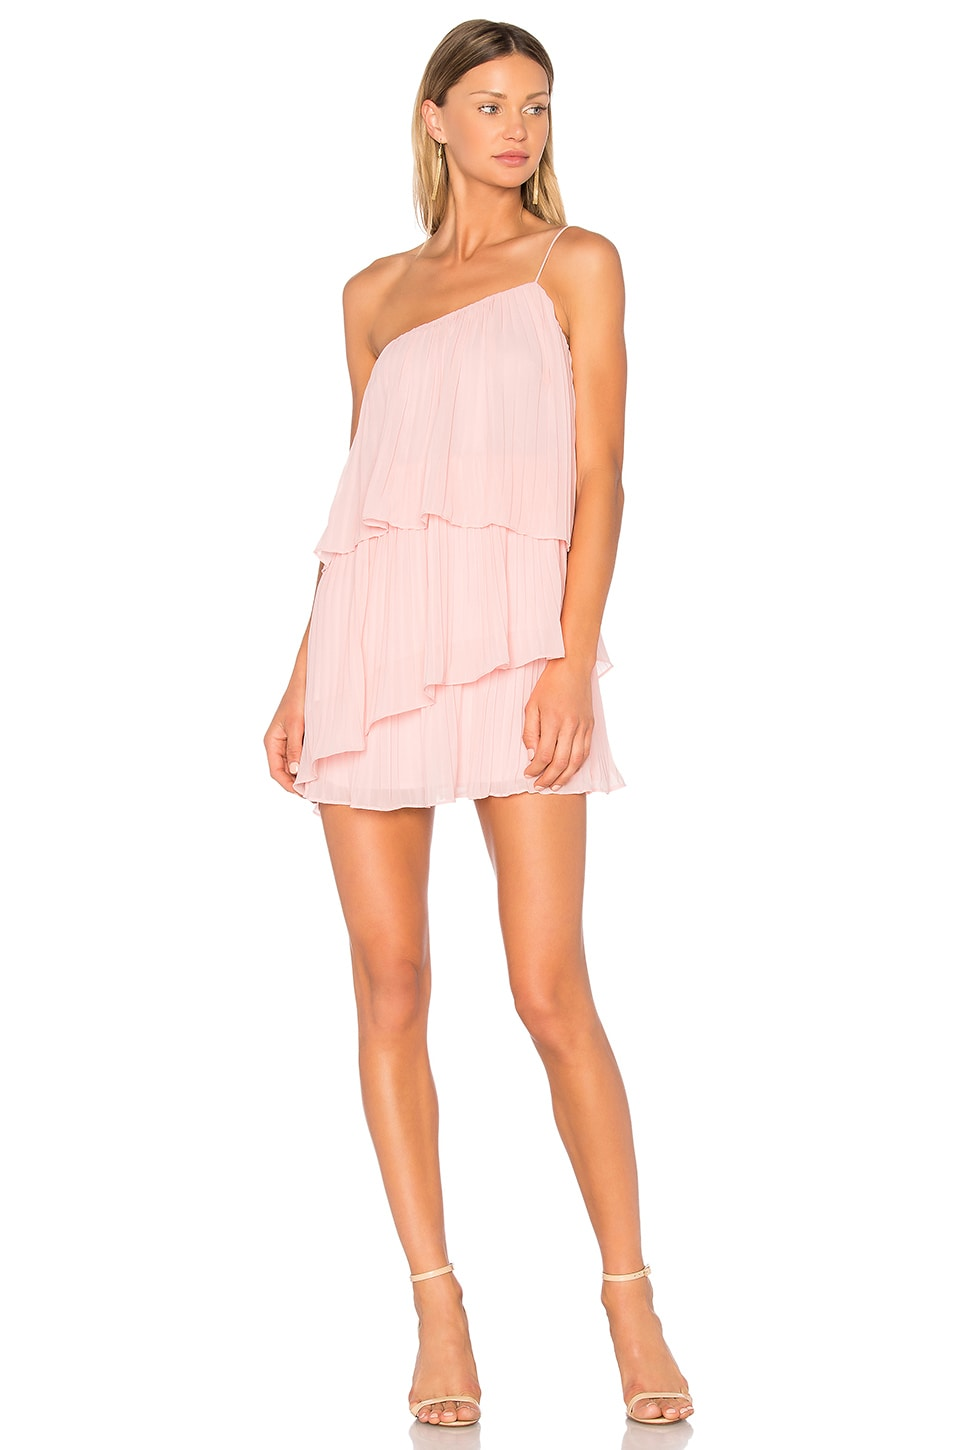 Girlfriend Material Dress             NBD                                                                                                                                         Sale price:                                                                       CA$ 119.92                                                                  Previous price:                                                                       CA$ 264.65 14